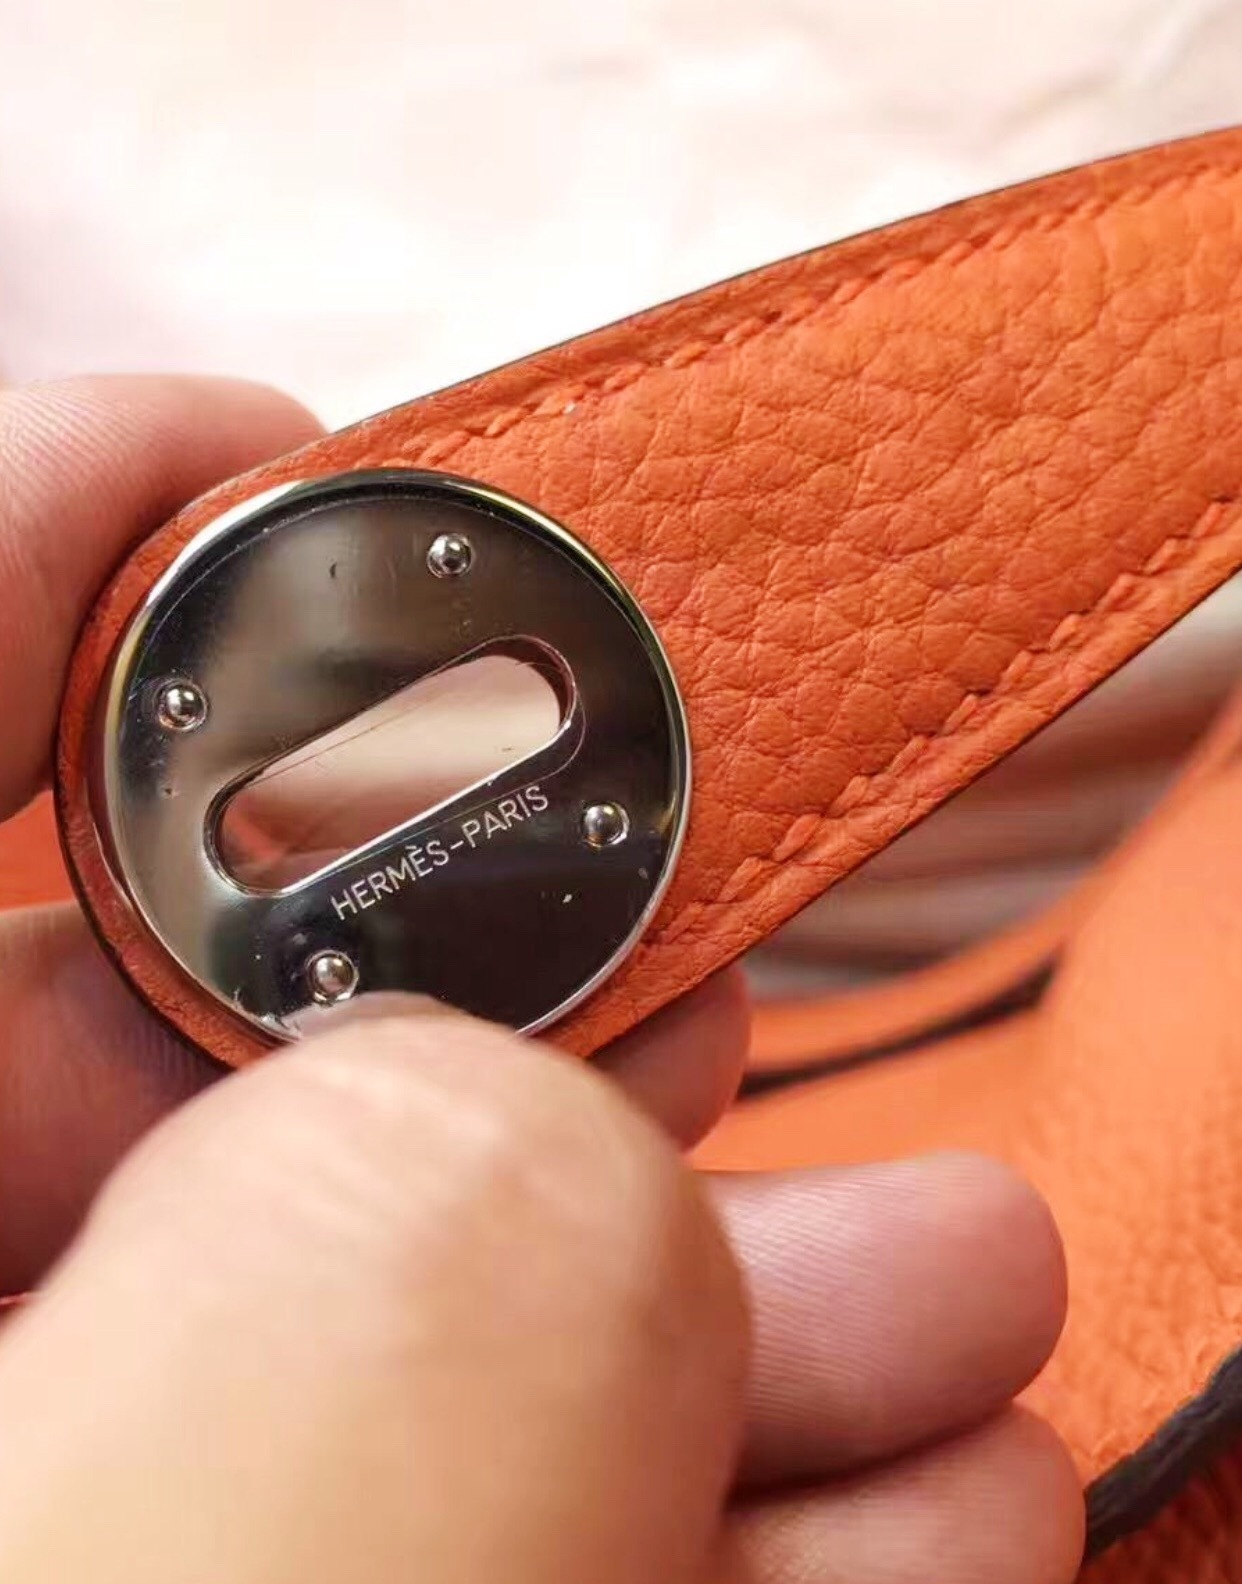 100% Authentic HERMES Taurillon Clemence Lindy 34 ORANGE Shoulder Bag PHW image 12